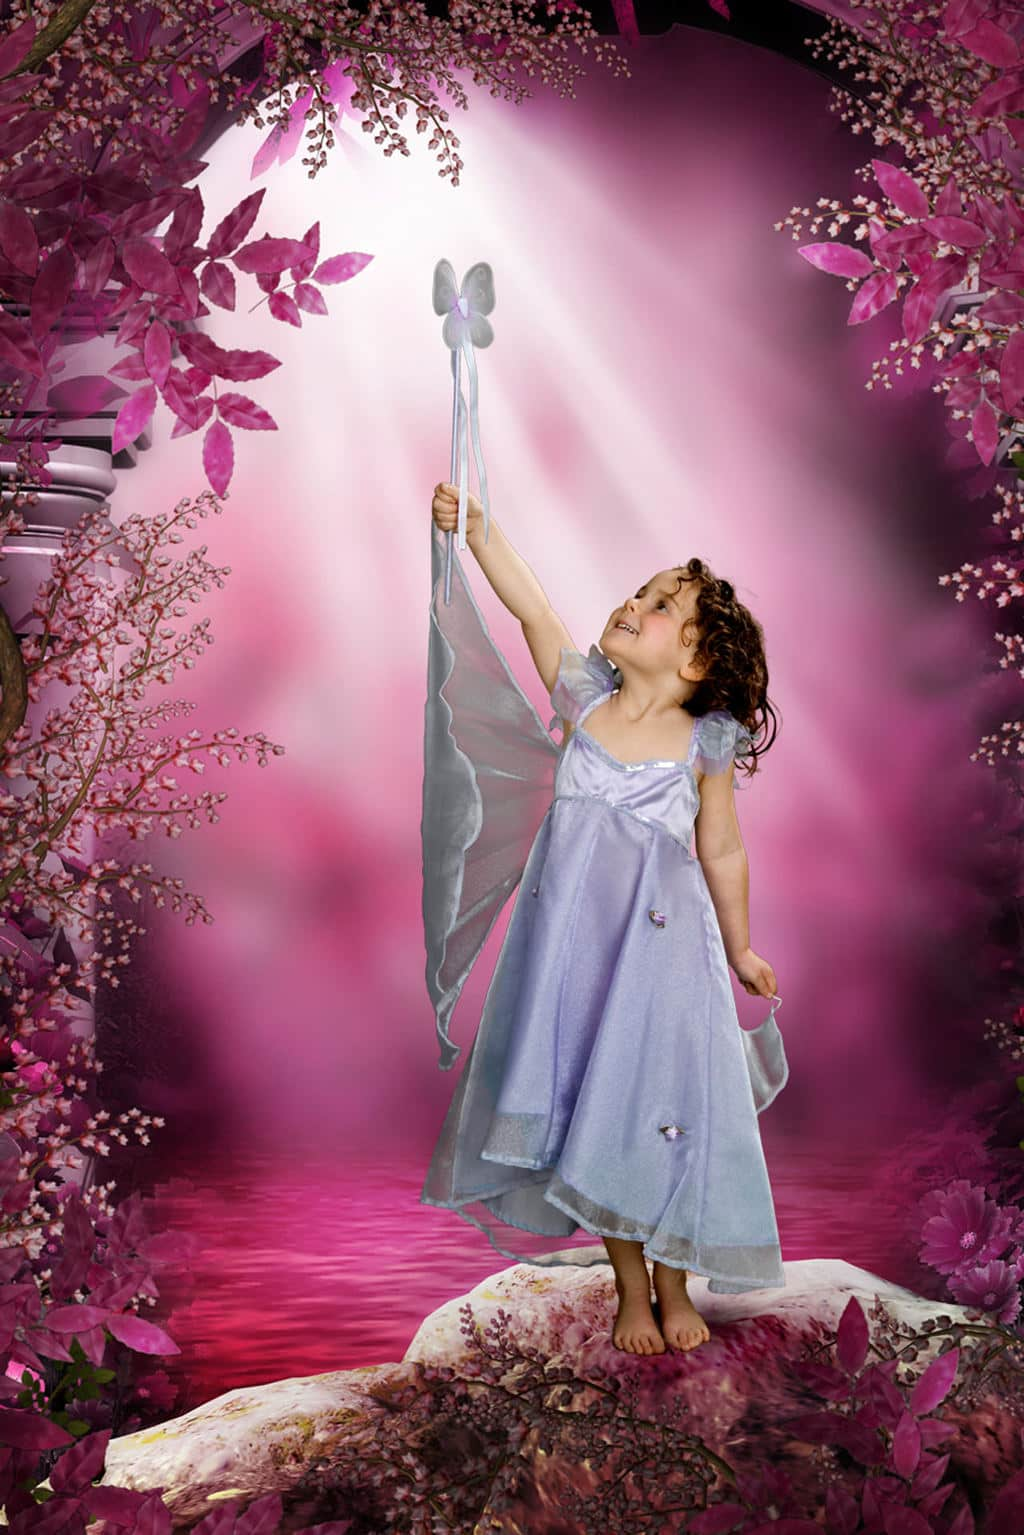 fairy photos for girls